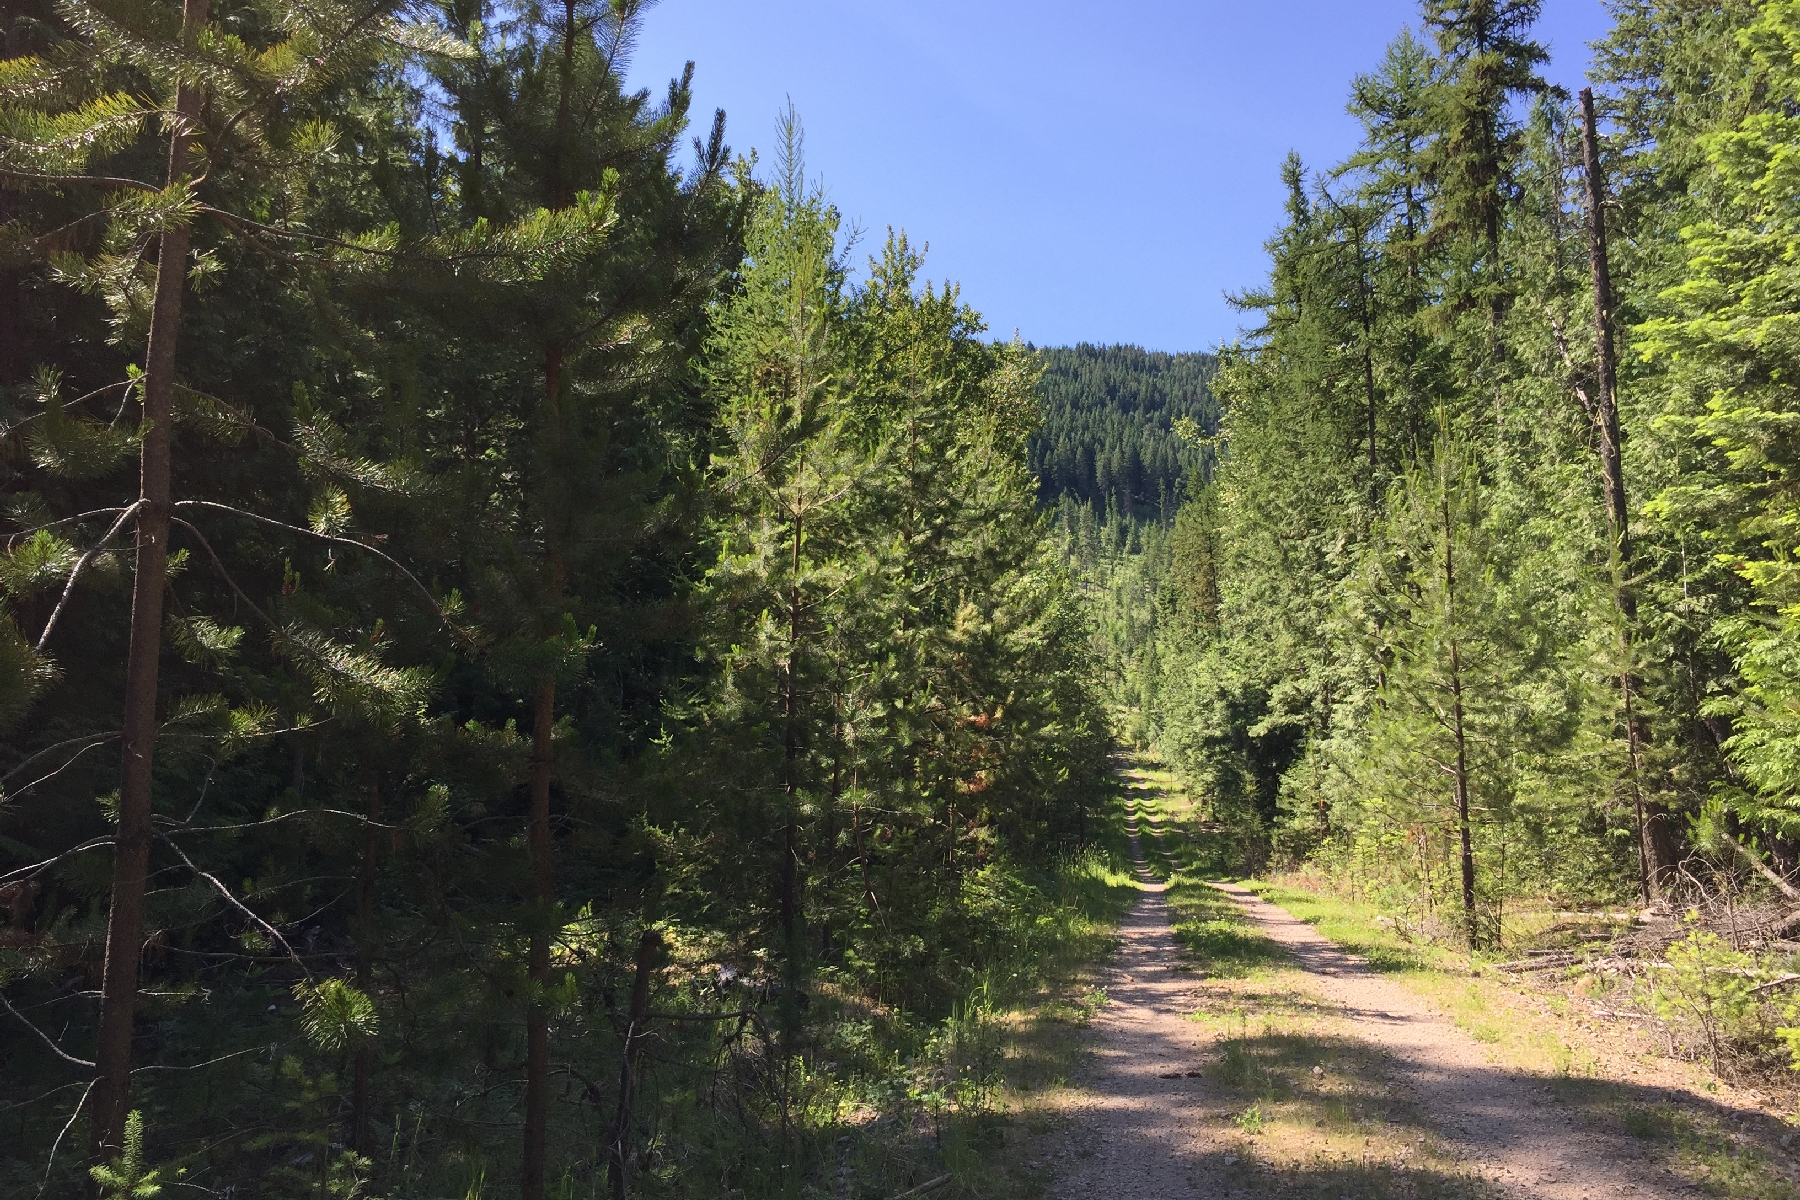 Land for Sale at Talache Rd 5 Timber Acres 2928 Talache Rd. Sagle, Idaho 83860 United States